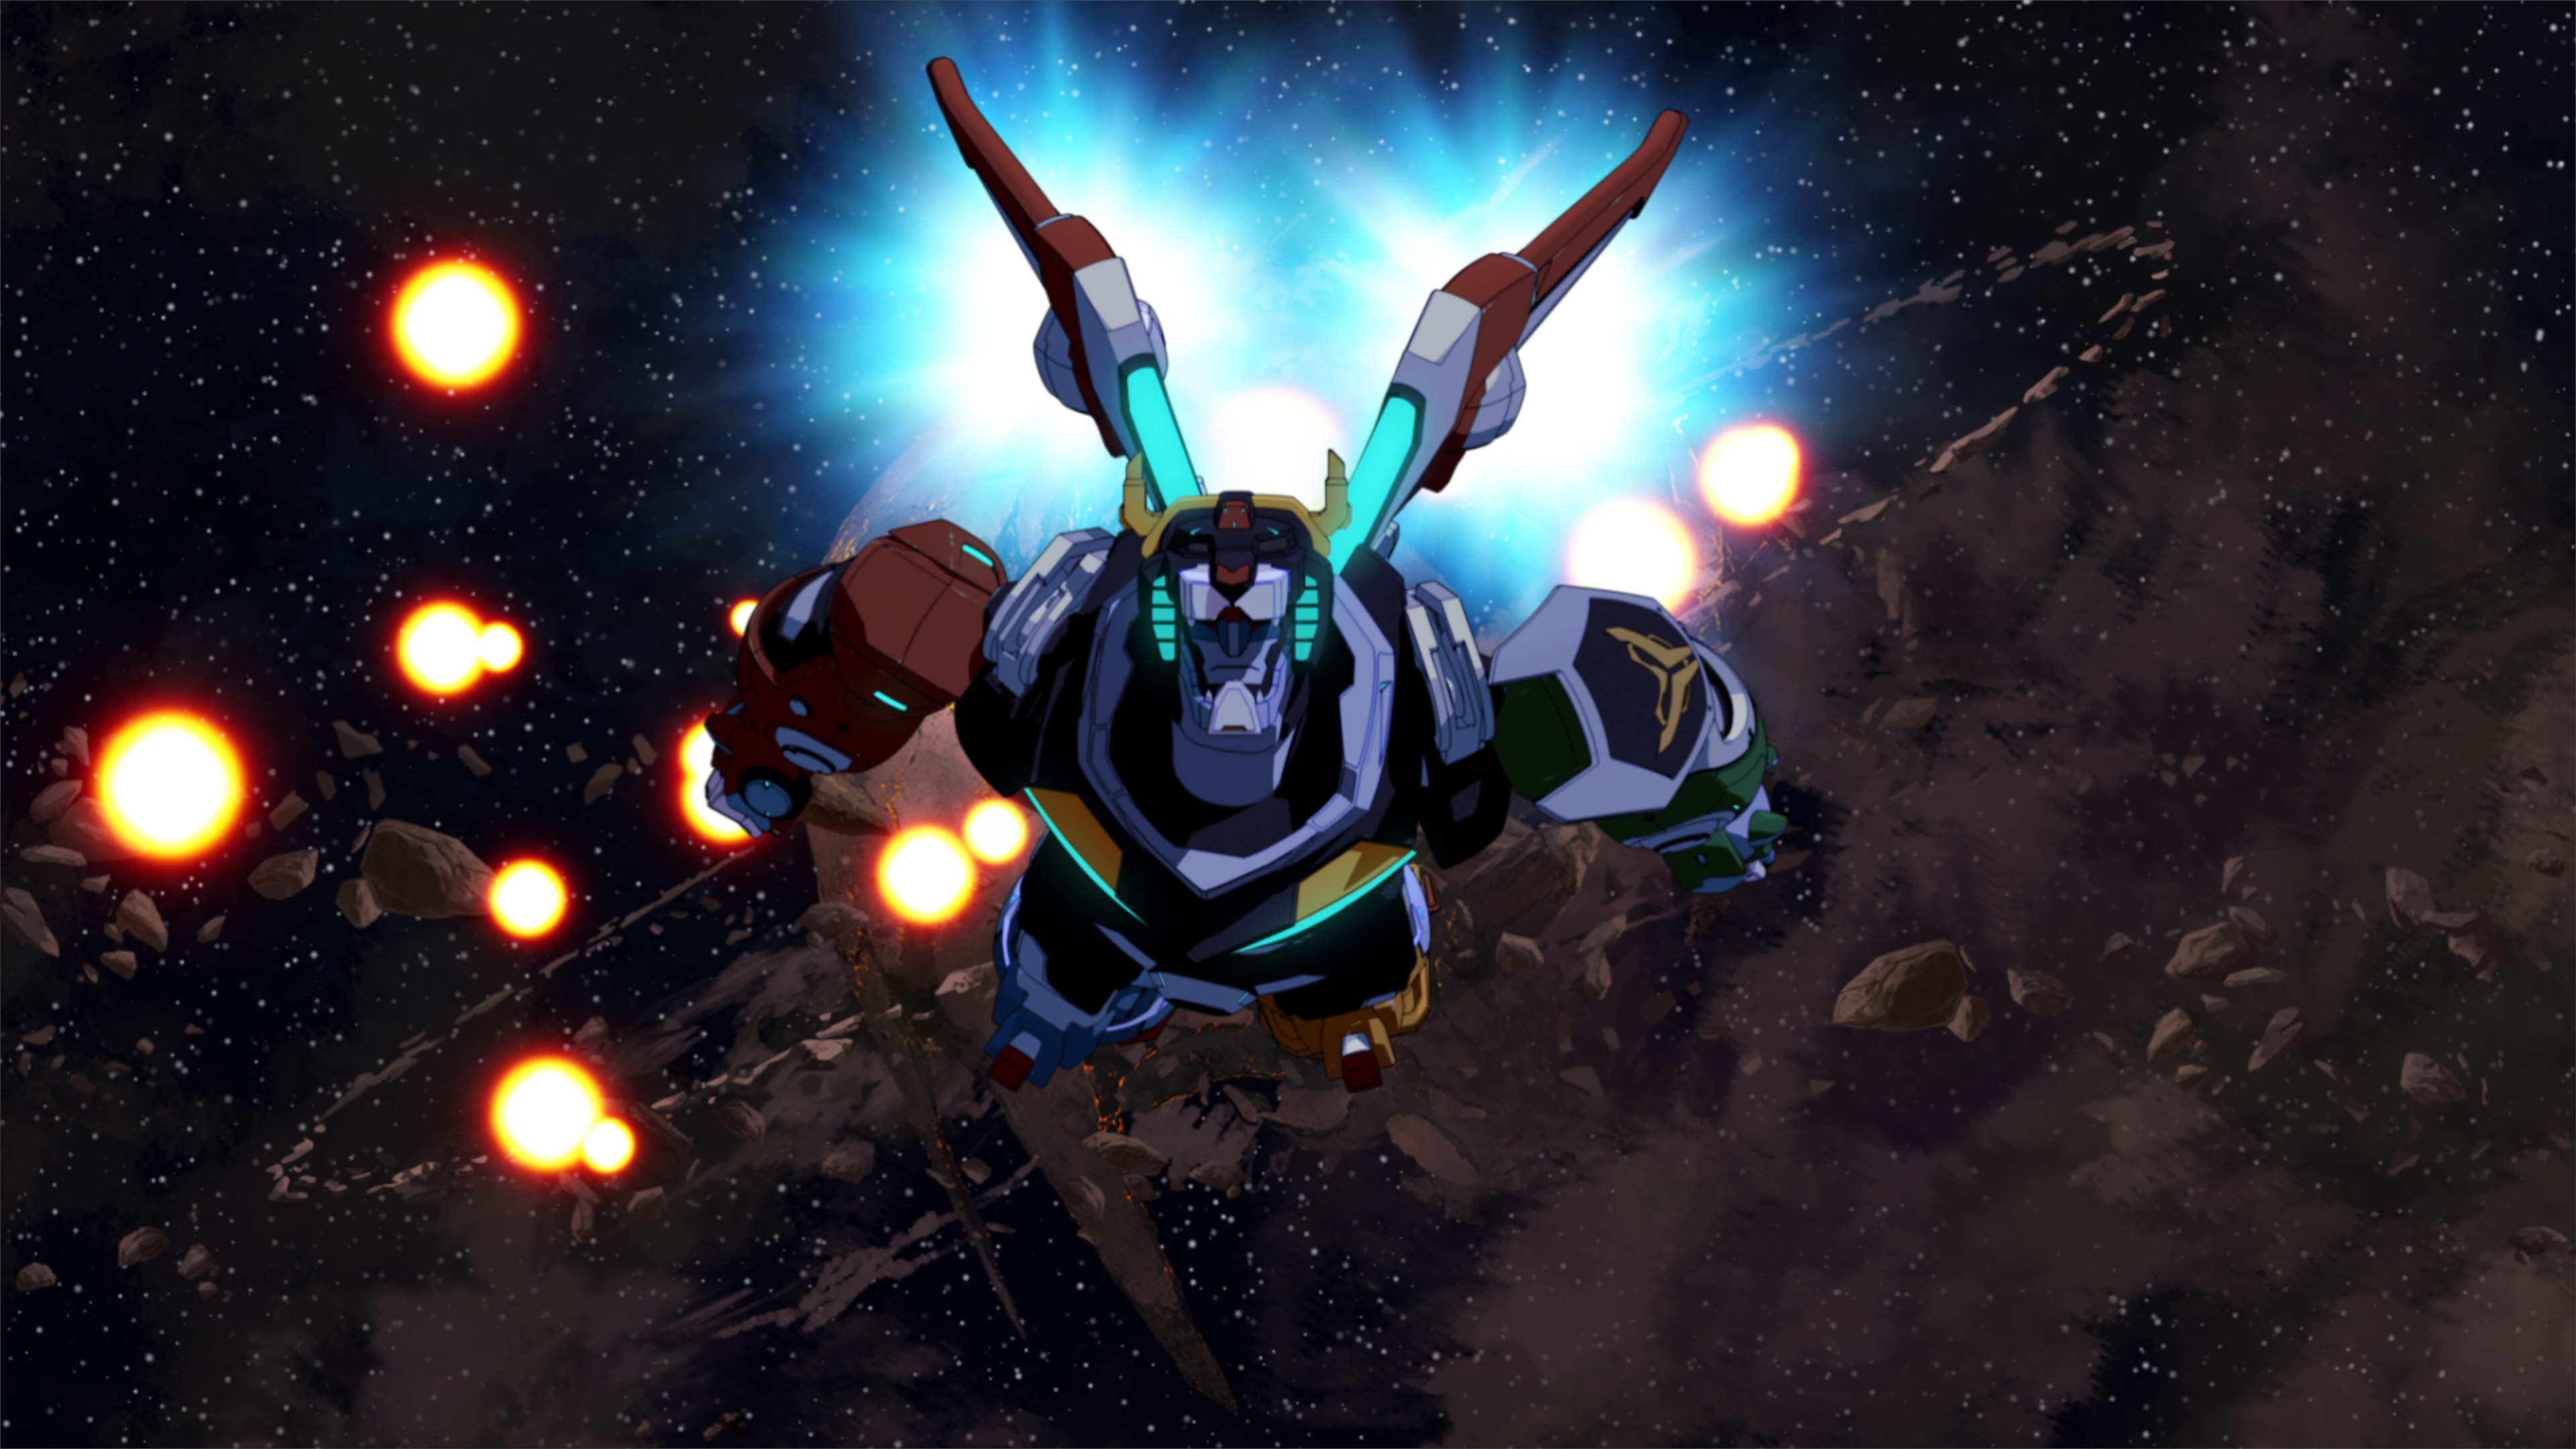 Voltron Legendary Defender Returns June 15th with 7 All New Episodes!!!